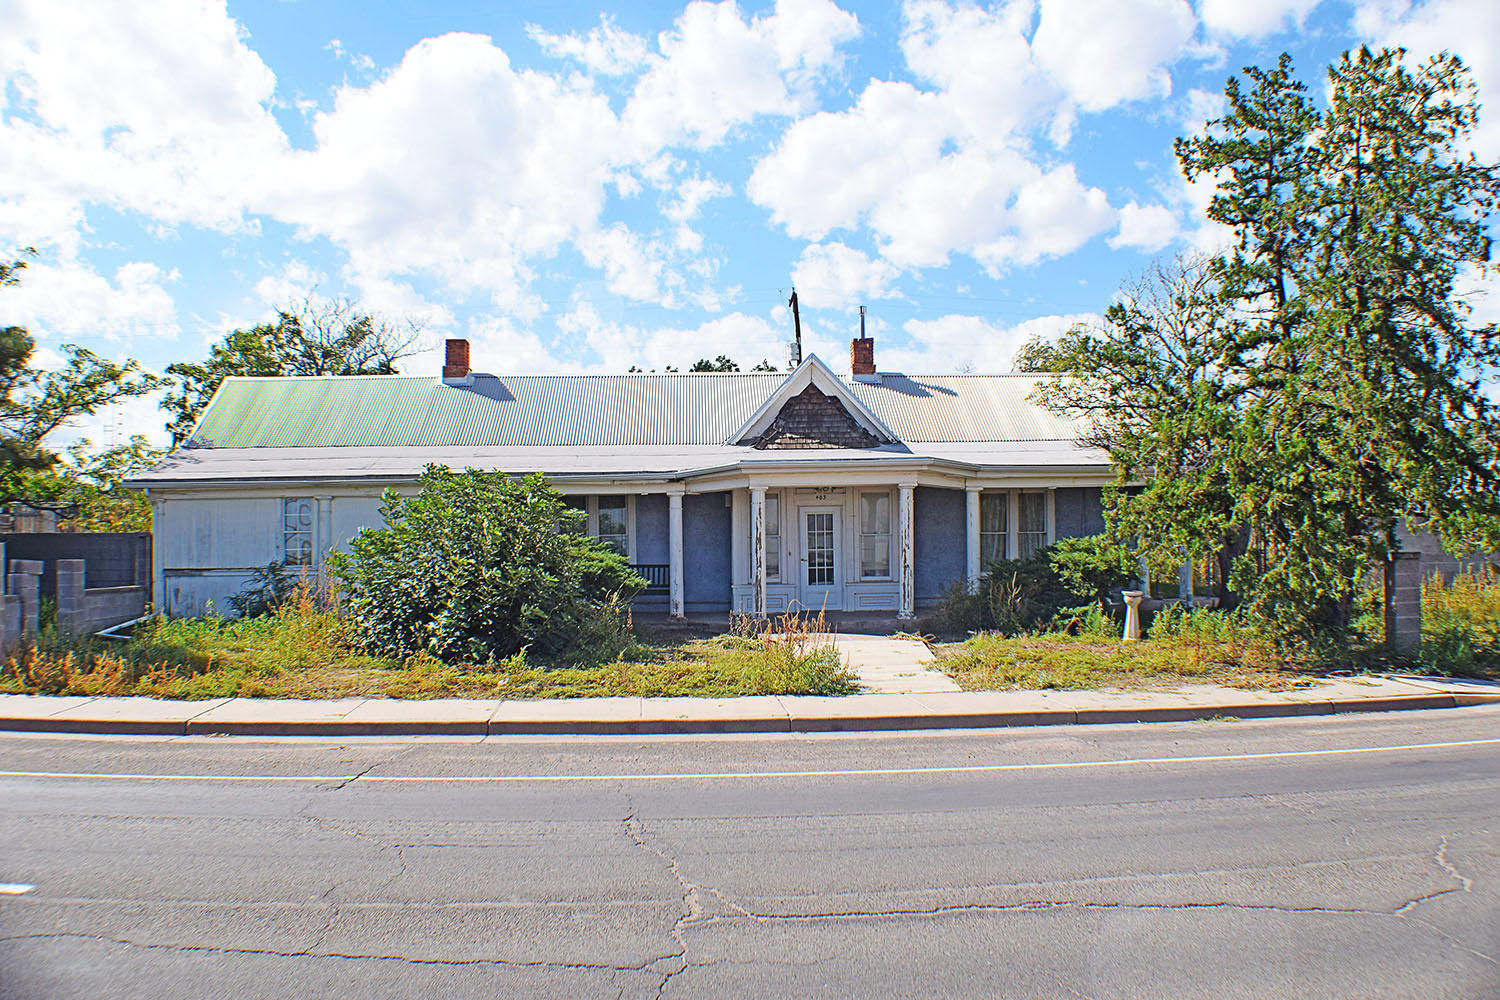 Victorian Exterior Design; Commercial Zoning; Huge Lot; & Main Street Exposure... are just a few great incentives for the person looking for the ideal investment.  Perfect for a ''Bed'n'Breakfast'' or a legal office or other great commercial business.  Property is completely fenced in, but has plenty of yard space available for a small RV Park.  The large country kitchen open to a huge dining area are ideal for the person that likes to entertain.  The traditional floor space boasts a huge foyer, formal living room, formal dining room, with some rooms having vintage metal, decorative ceilings and vintage light fixtures.  This is truly a ''Diamond in the Rough'' and will make a beautiful restoration for the right person.